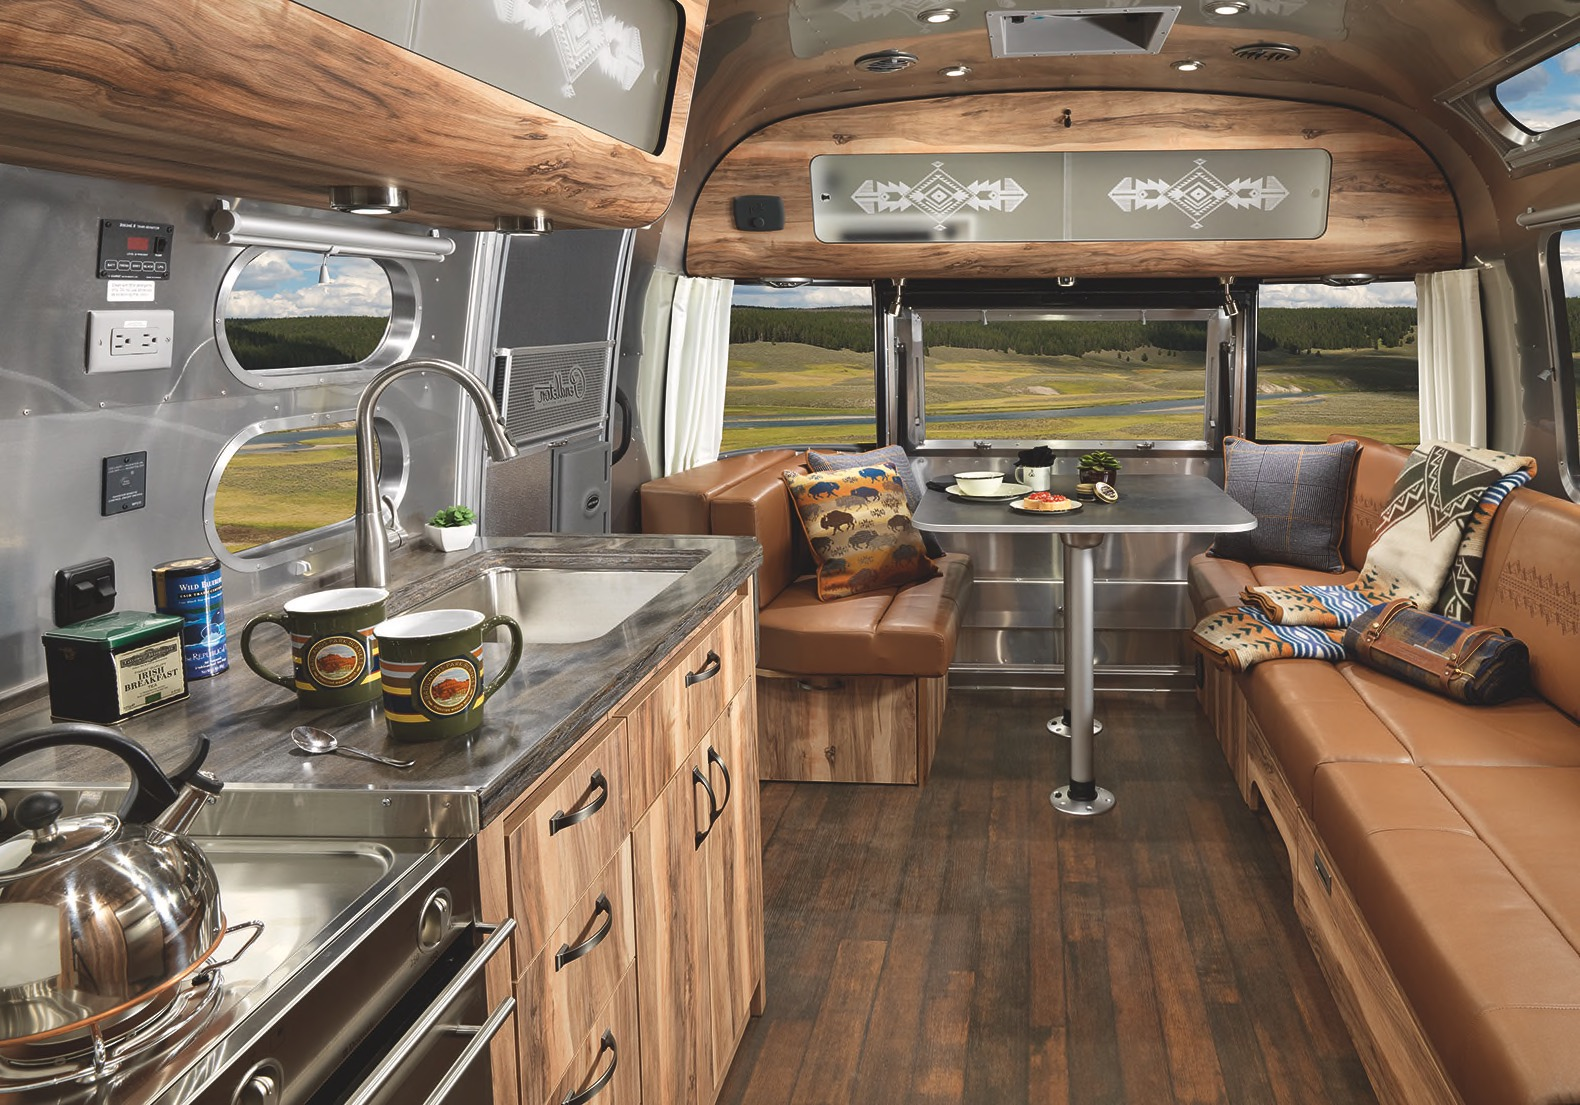 Travel Trailer, Mobile Home, Airstream, Pendleton, National Park Service,  National Park